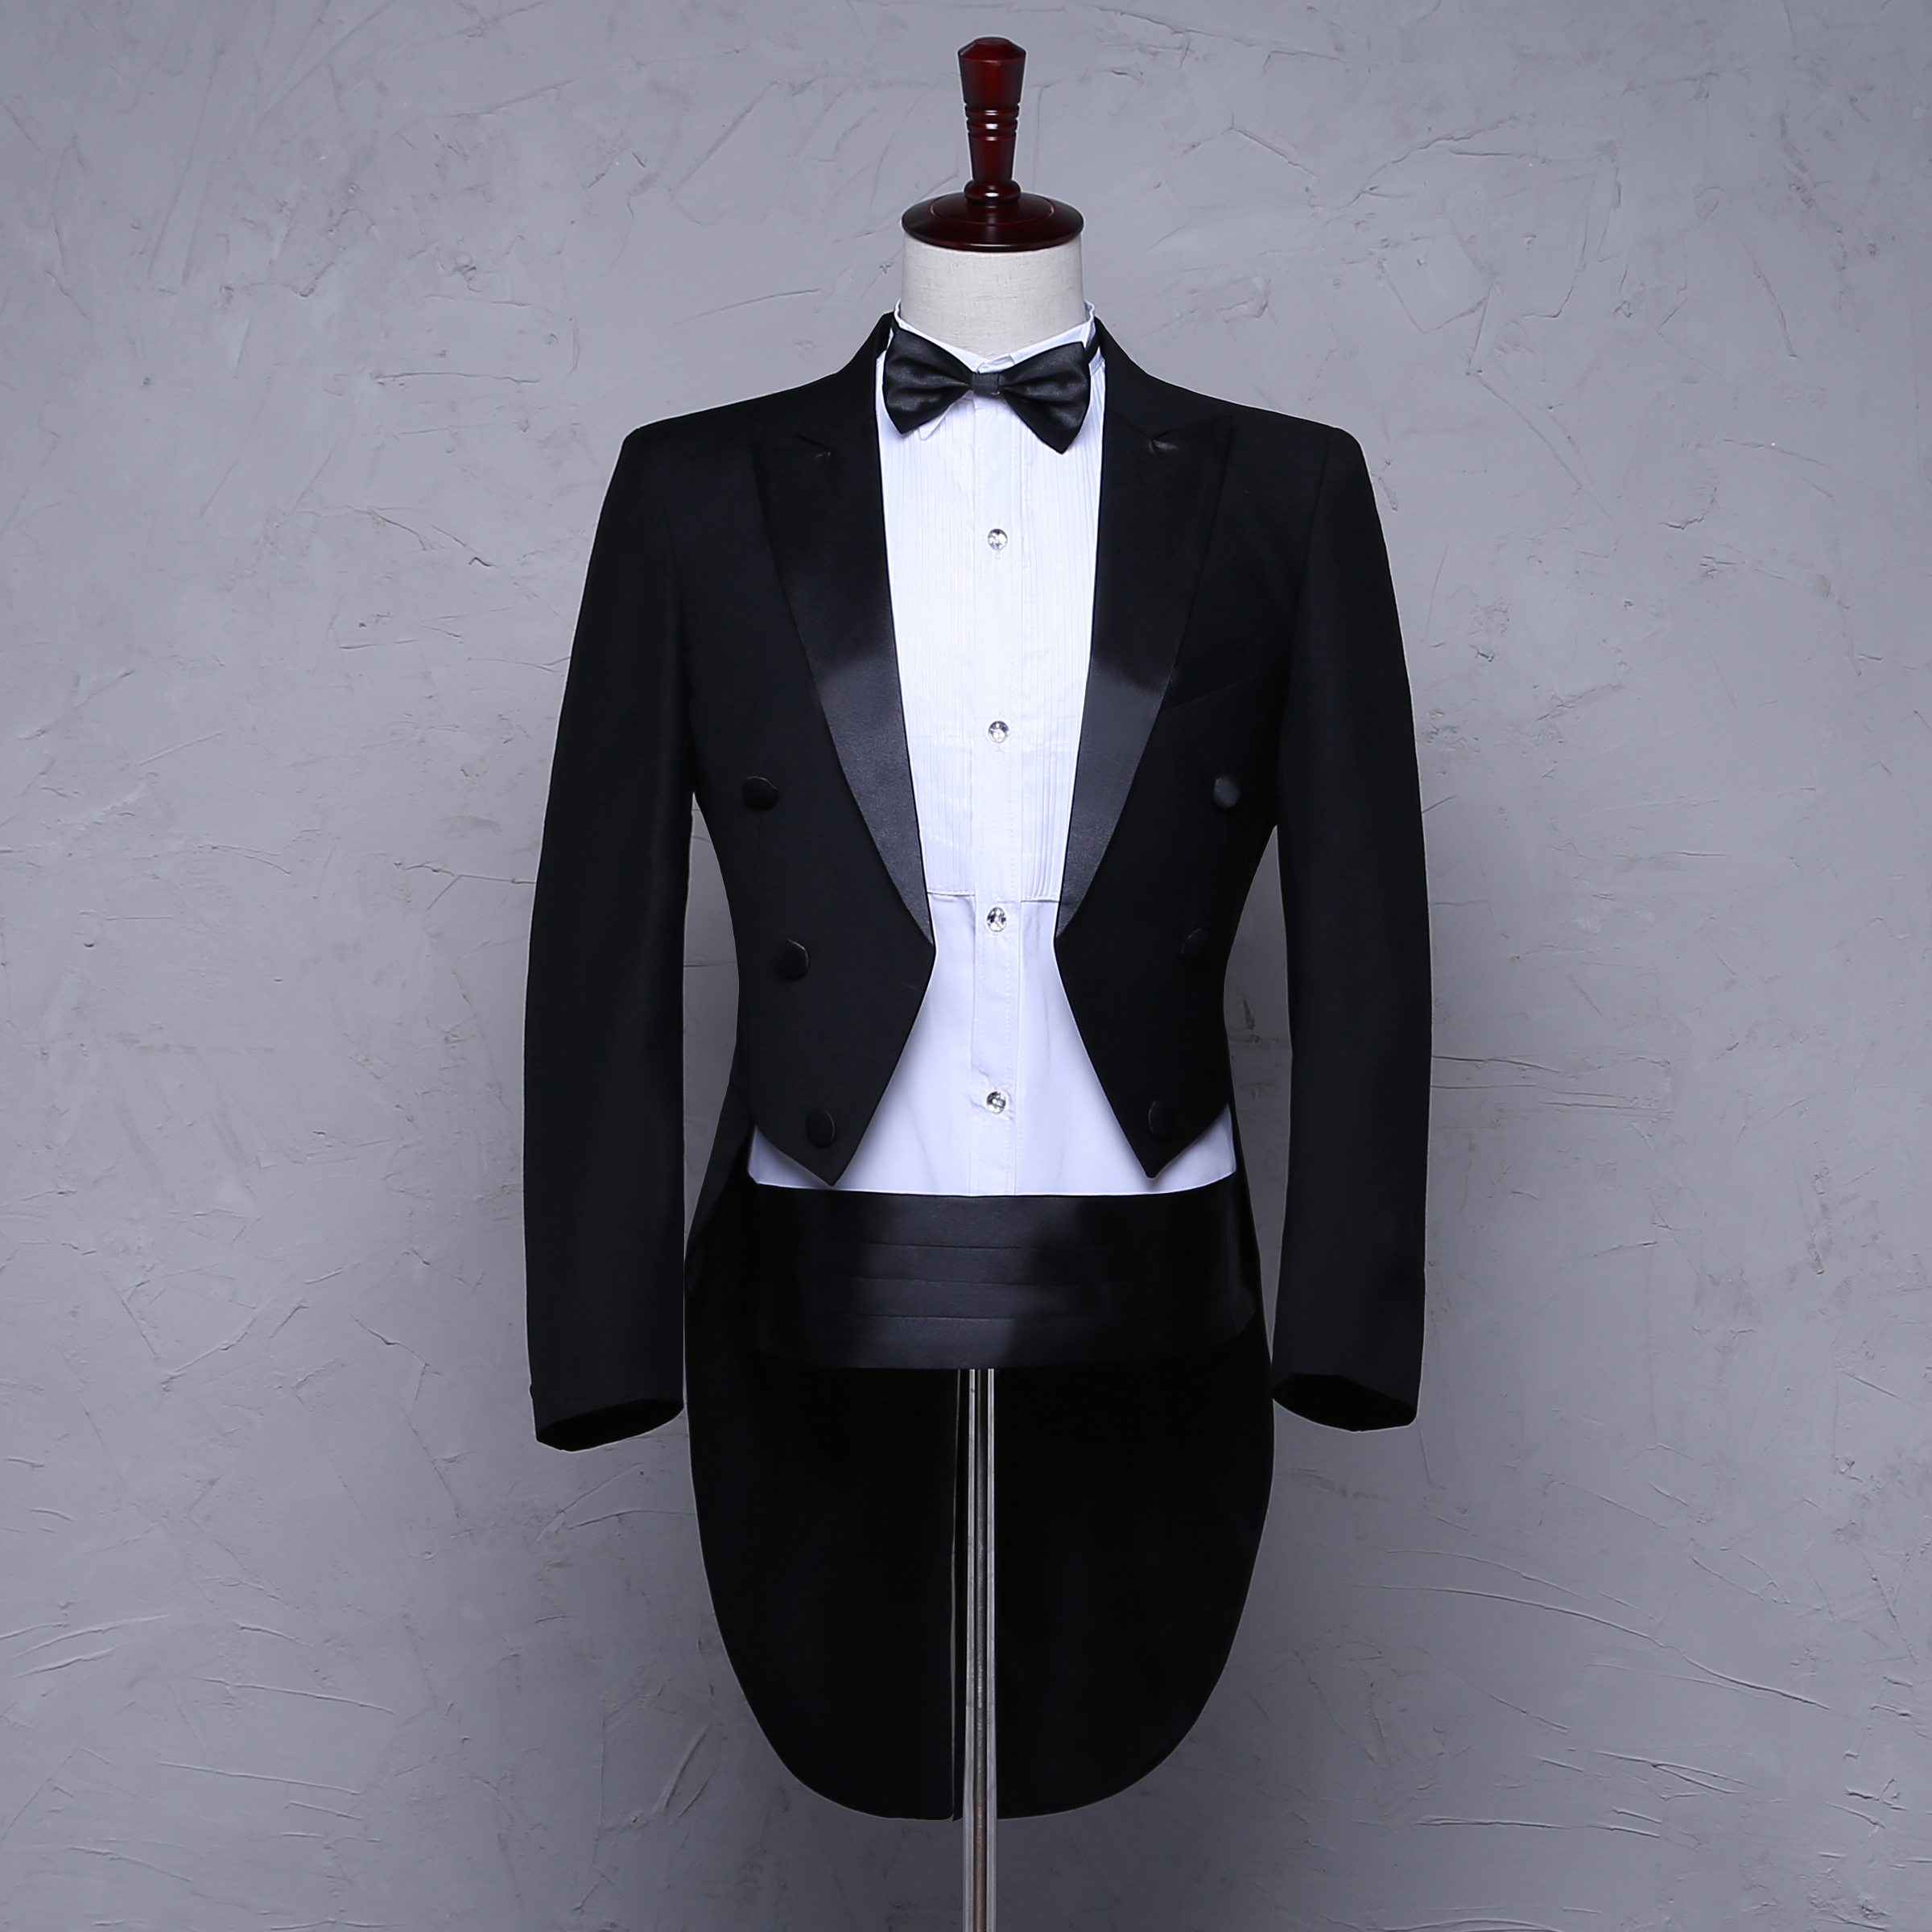 New mens black and white tuxedo suit stage performance chorus wedding studio photo annual meeting MC